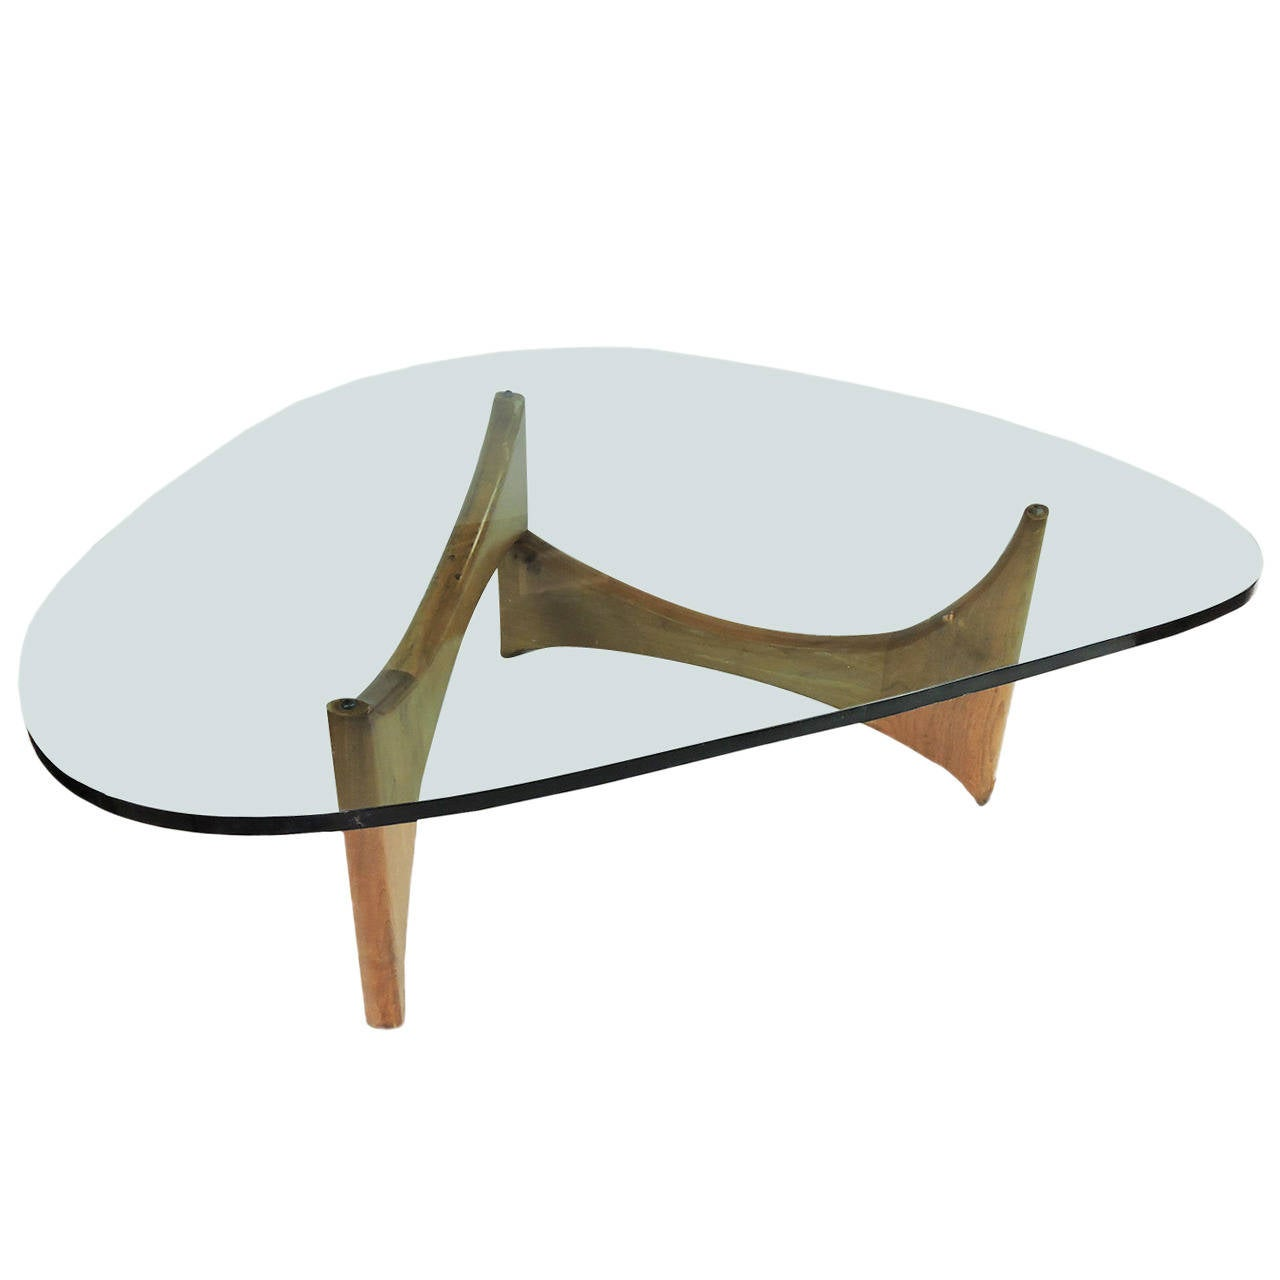 Mid century modern glass and wood coffee table at 1stdibs Mid century coffee tables